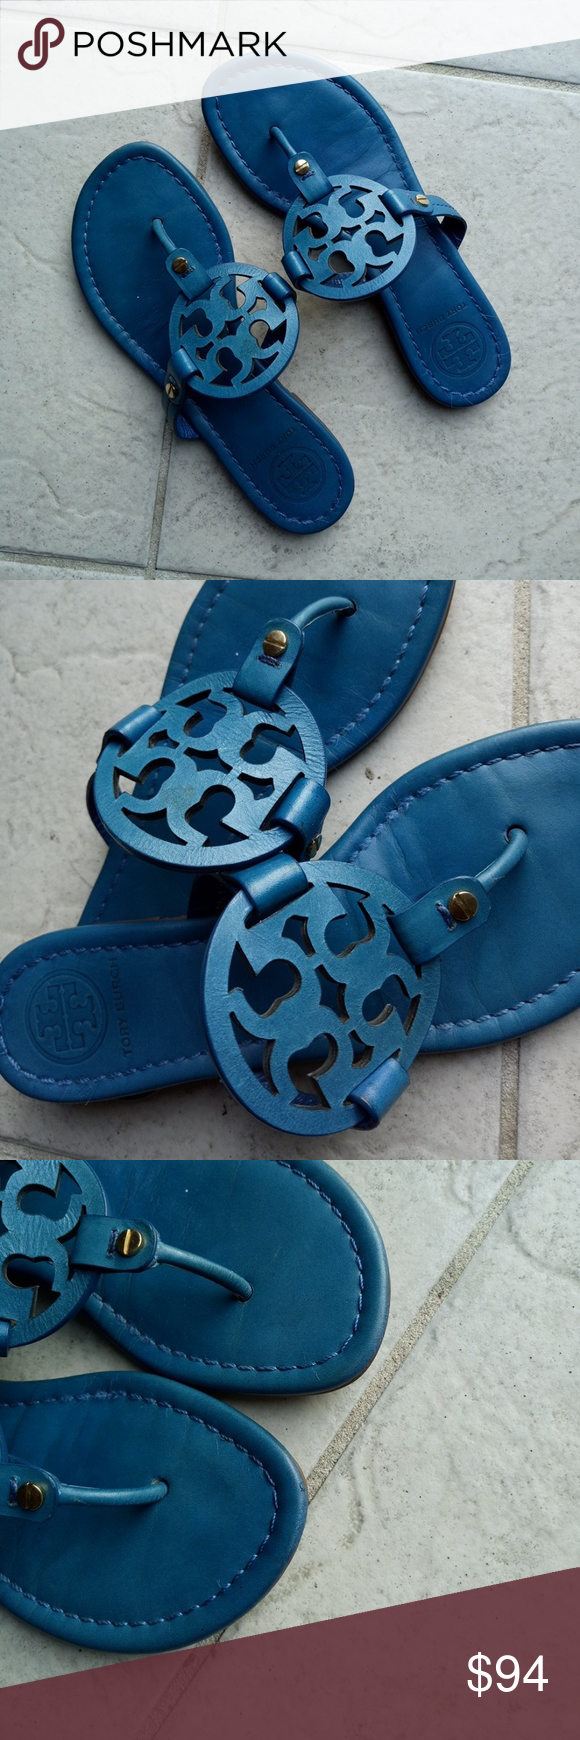 c422f0b5a7524d Tory Burch Miller sandals Great used condition Tory Burch Shoes